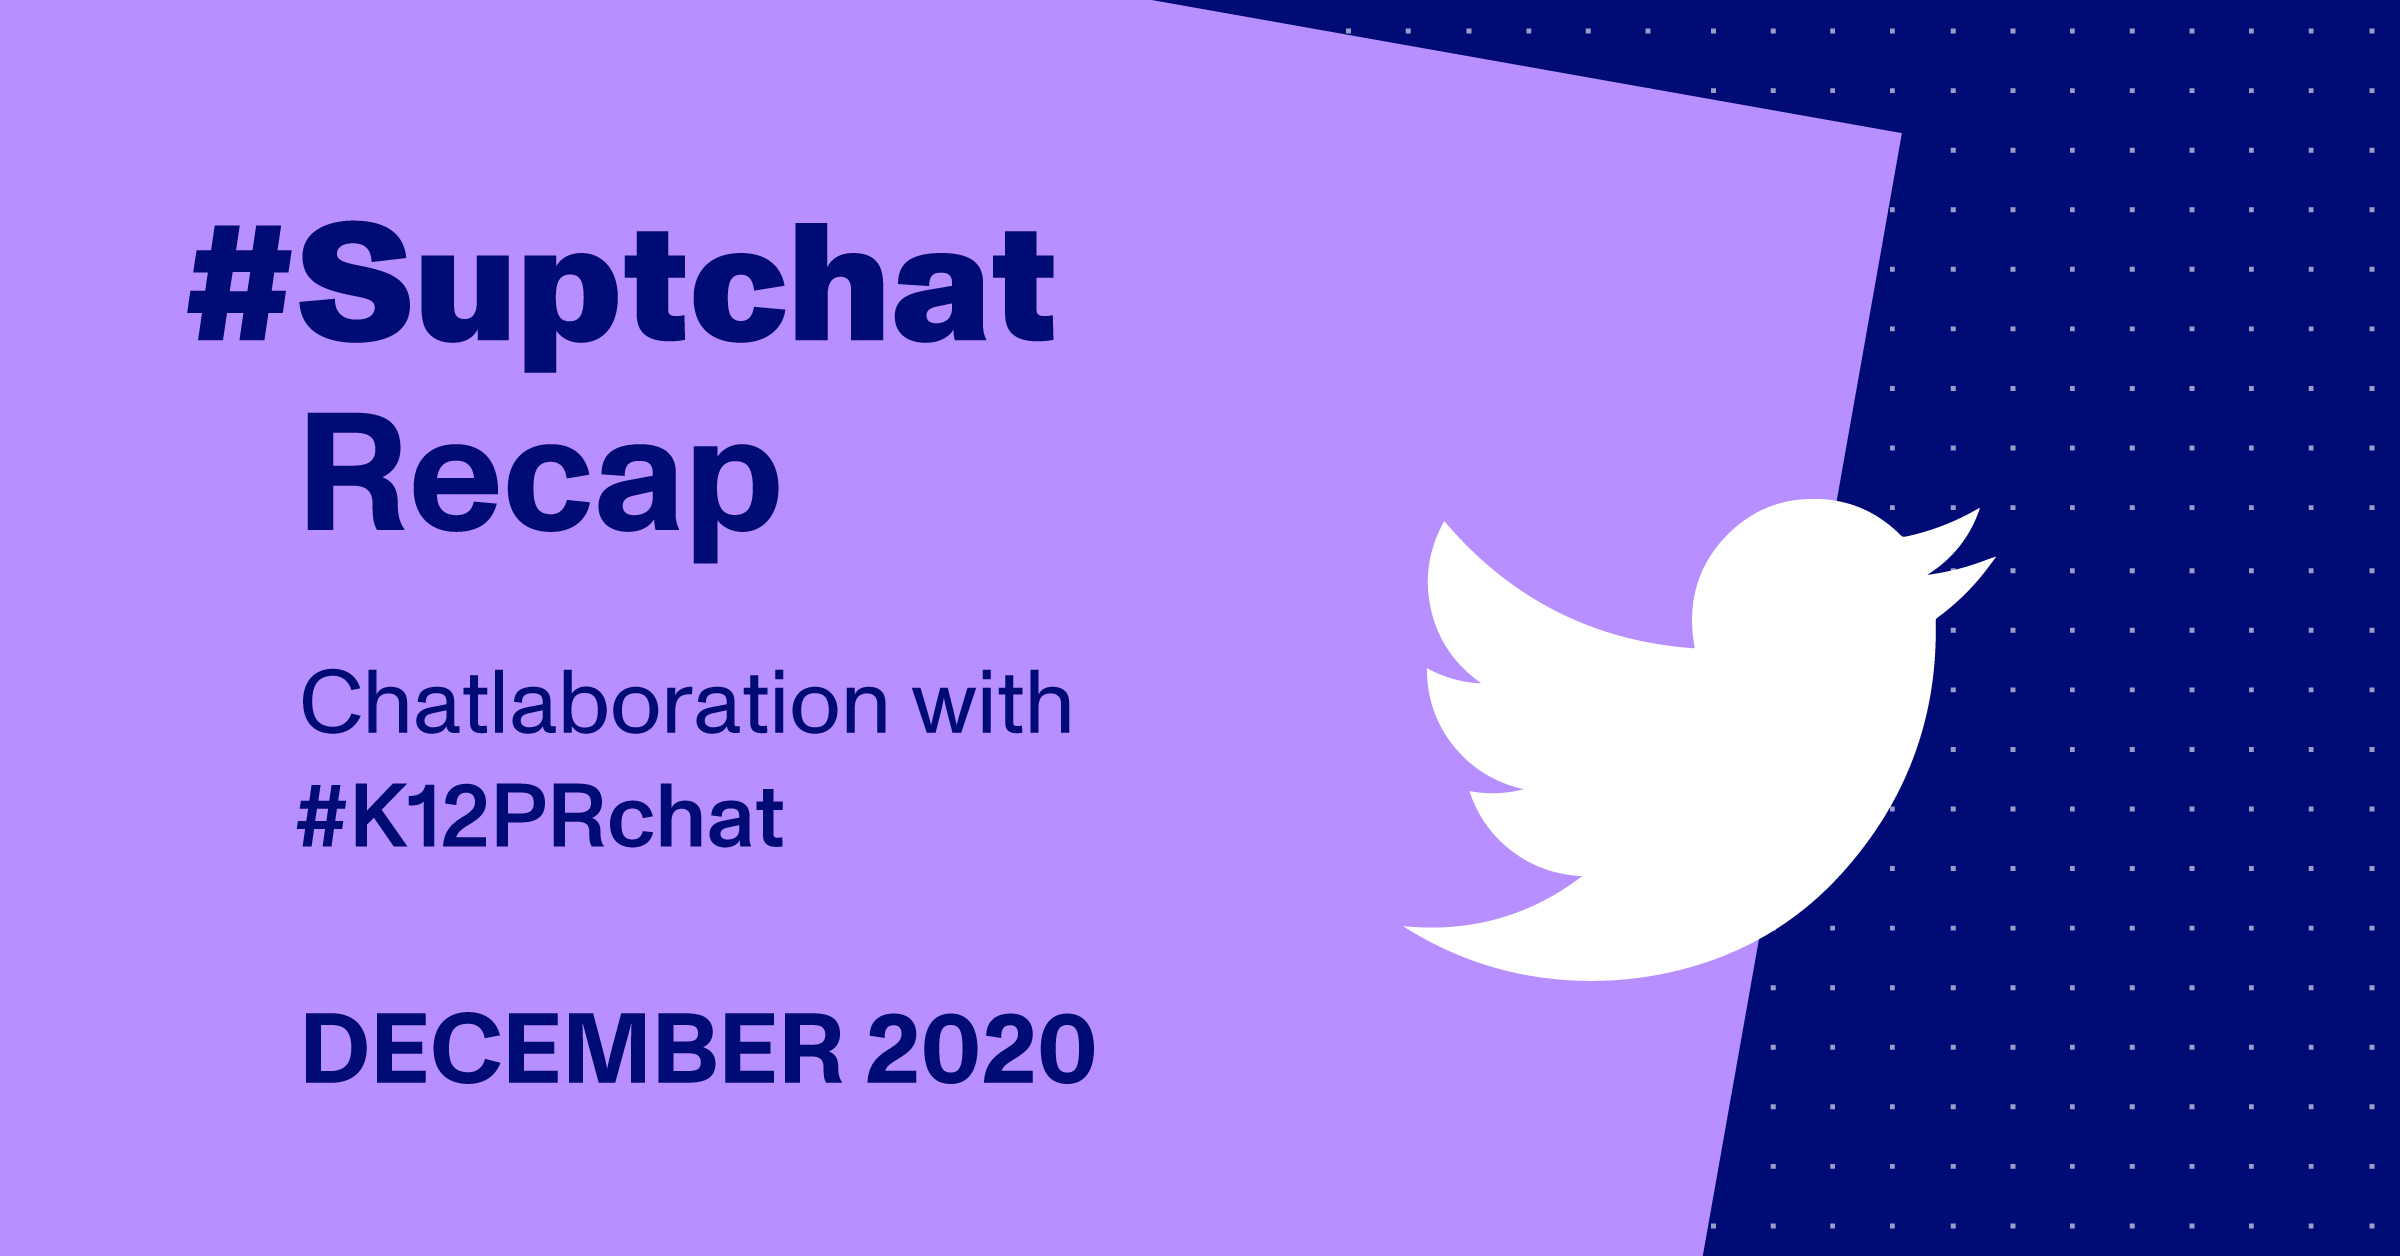 Blog Thumbnail of #SuptChat Recap - Chatlaboration with #K12PRchat from December 2020